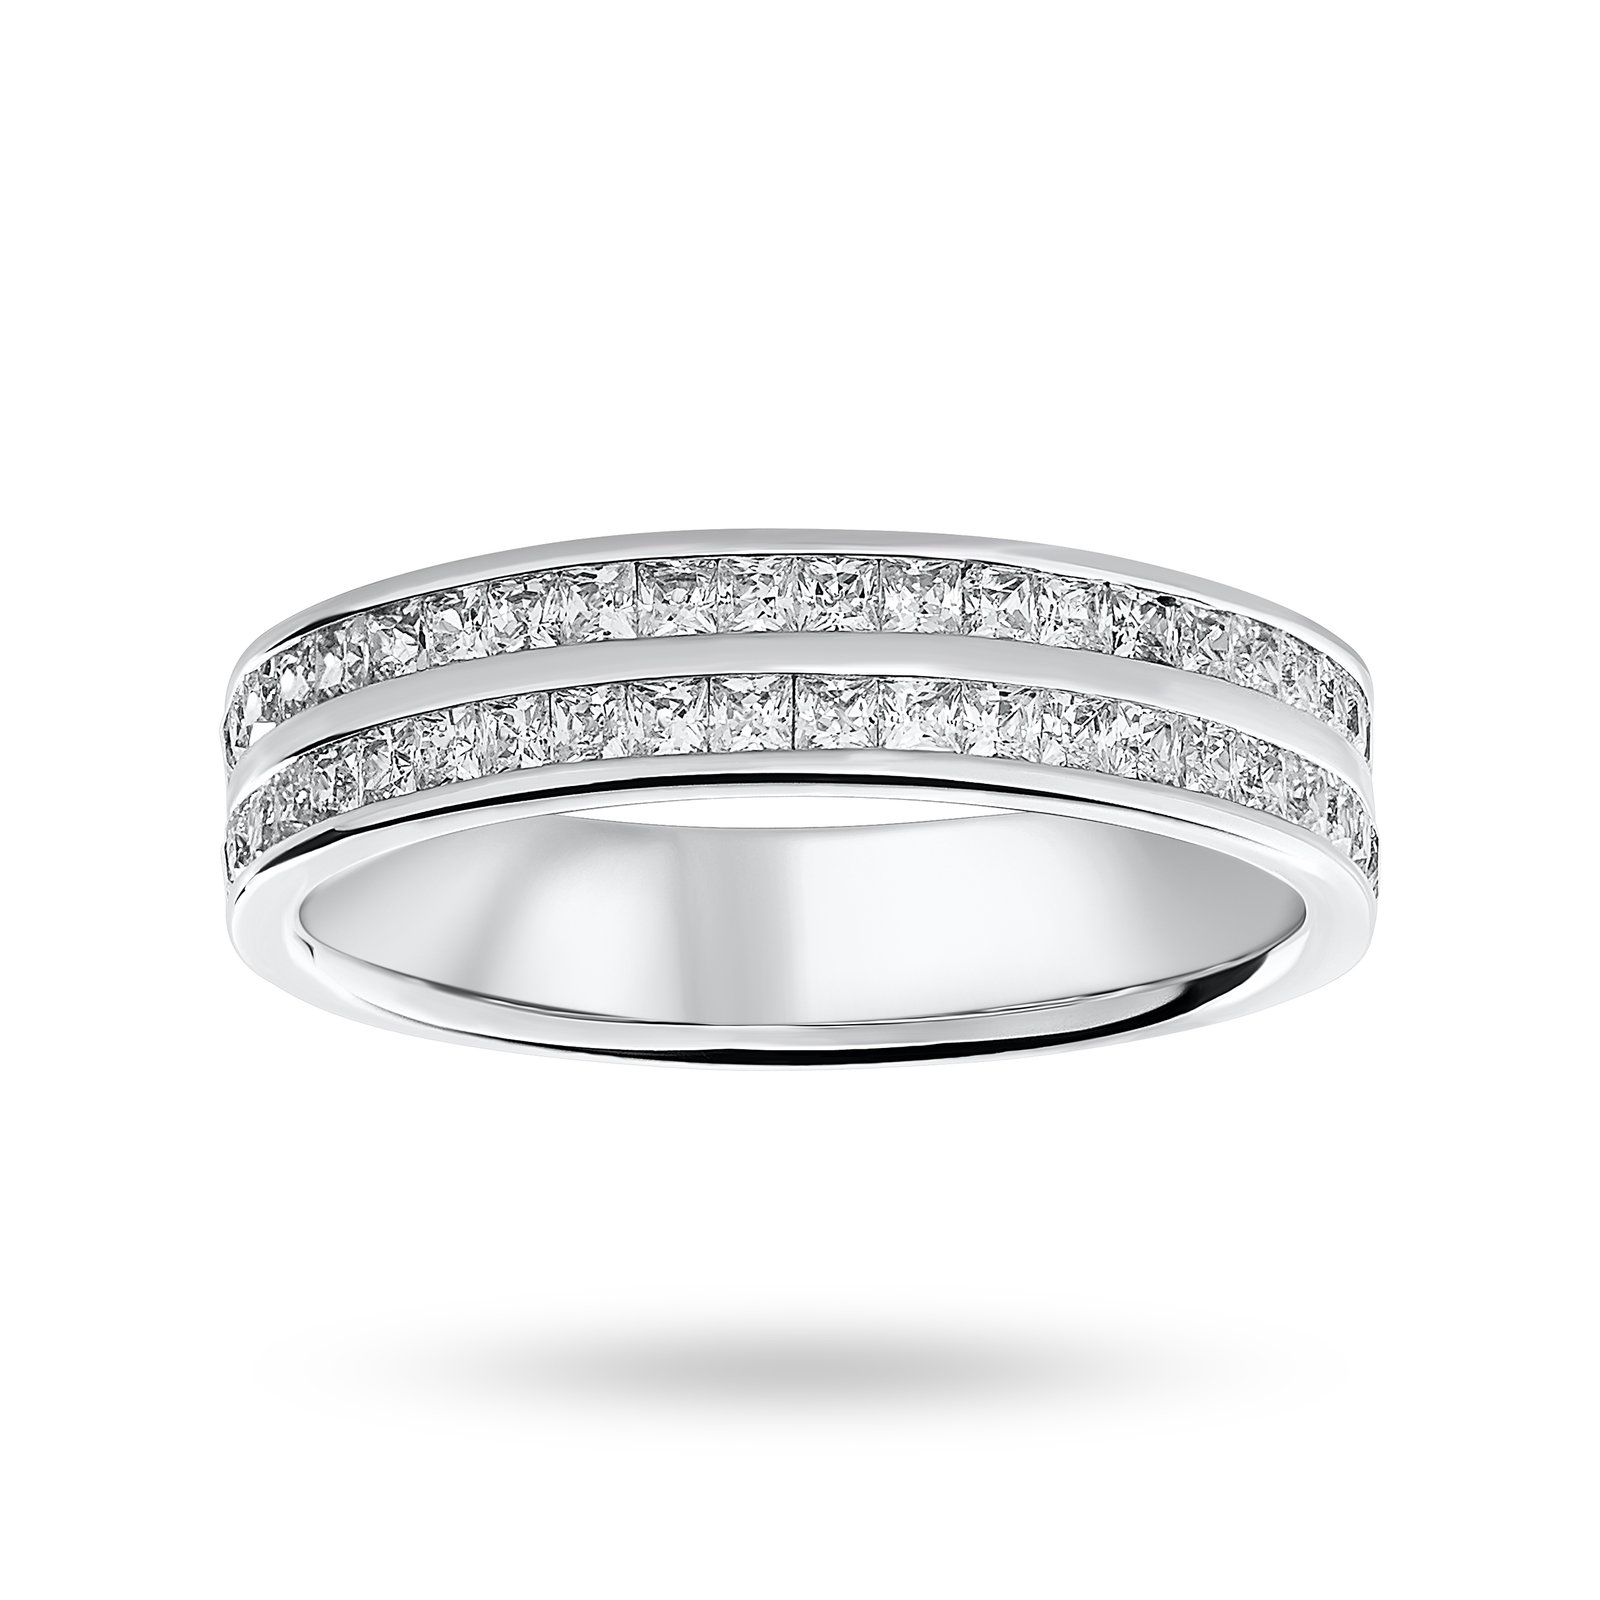 Platinum 0.75 Carat Princess Cut 2 Row Half Eternity Ring